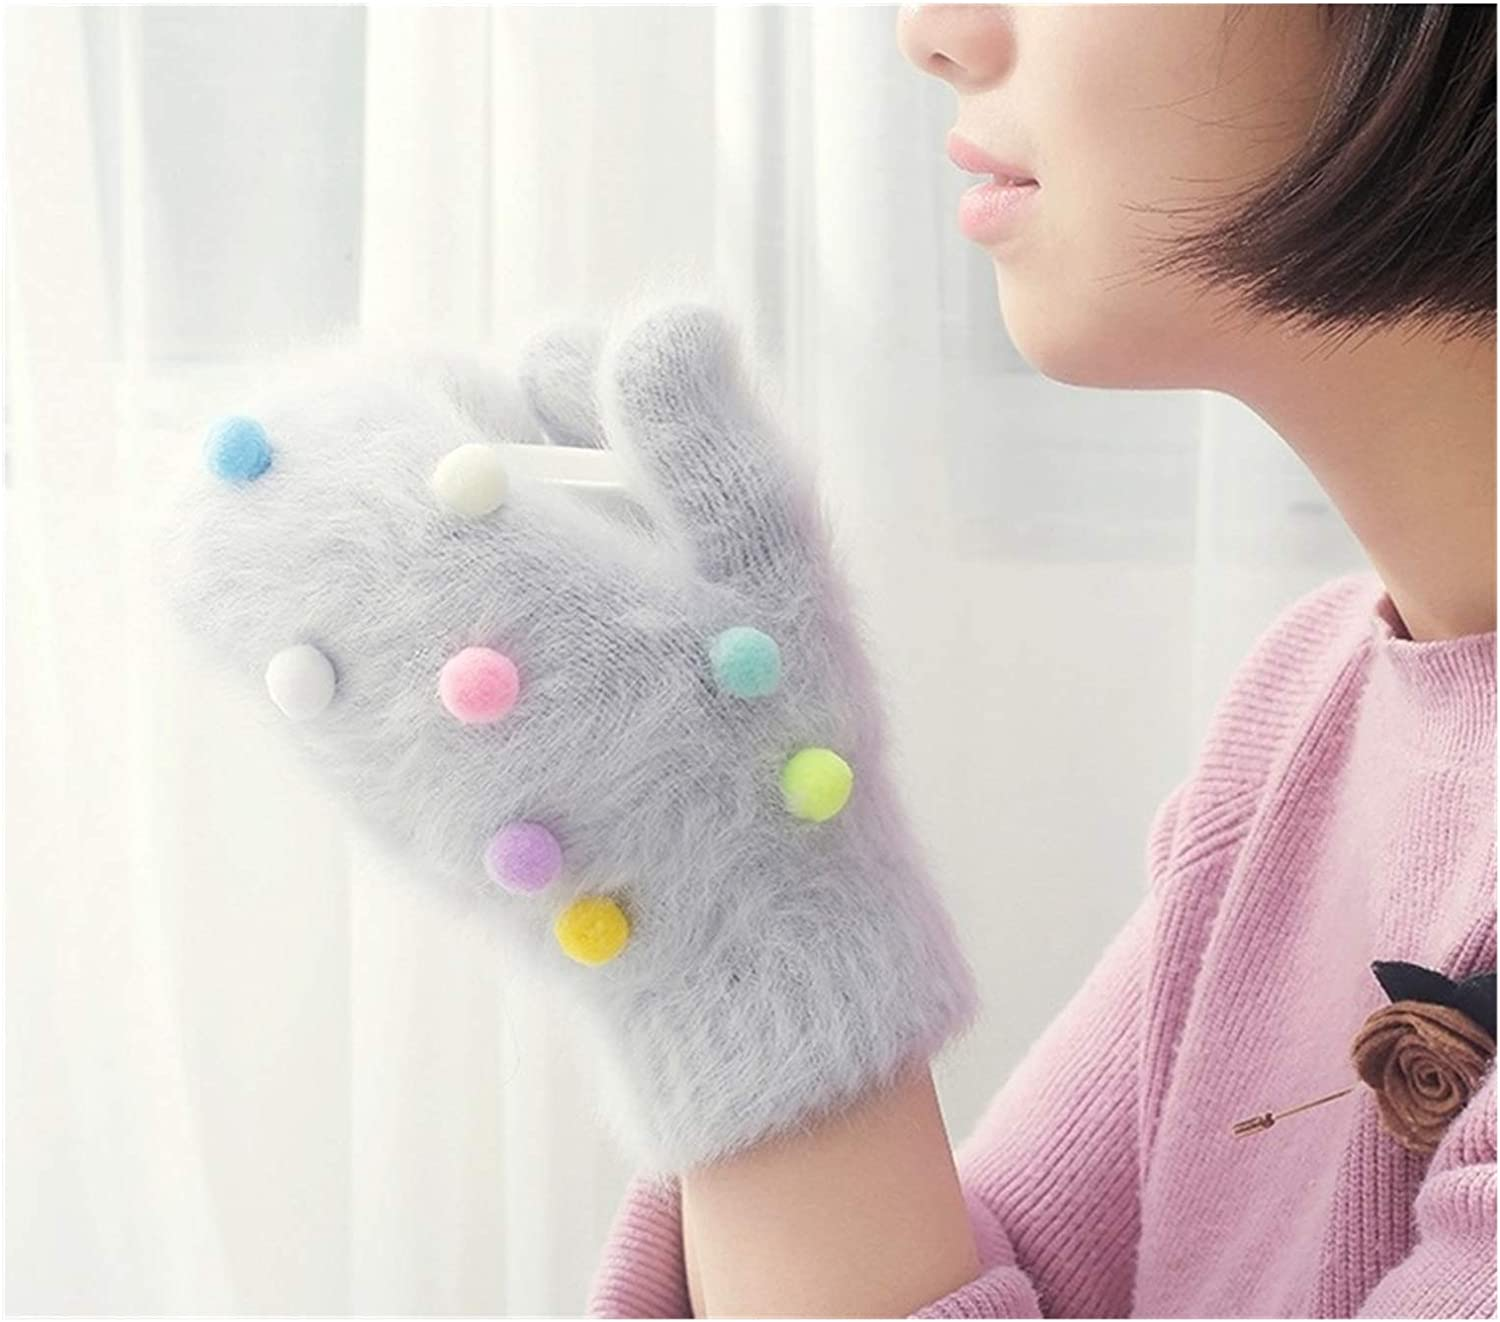 JBIVWW Winter Gloves Women Colorful Ball Gloves Knitted Mittens Female Warm Gloves (Color : Light Grey, Gloves Size : Free Size)